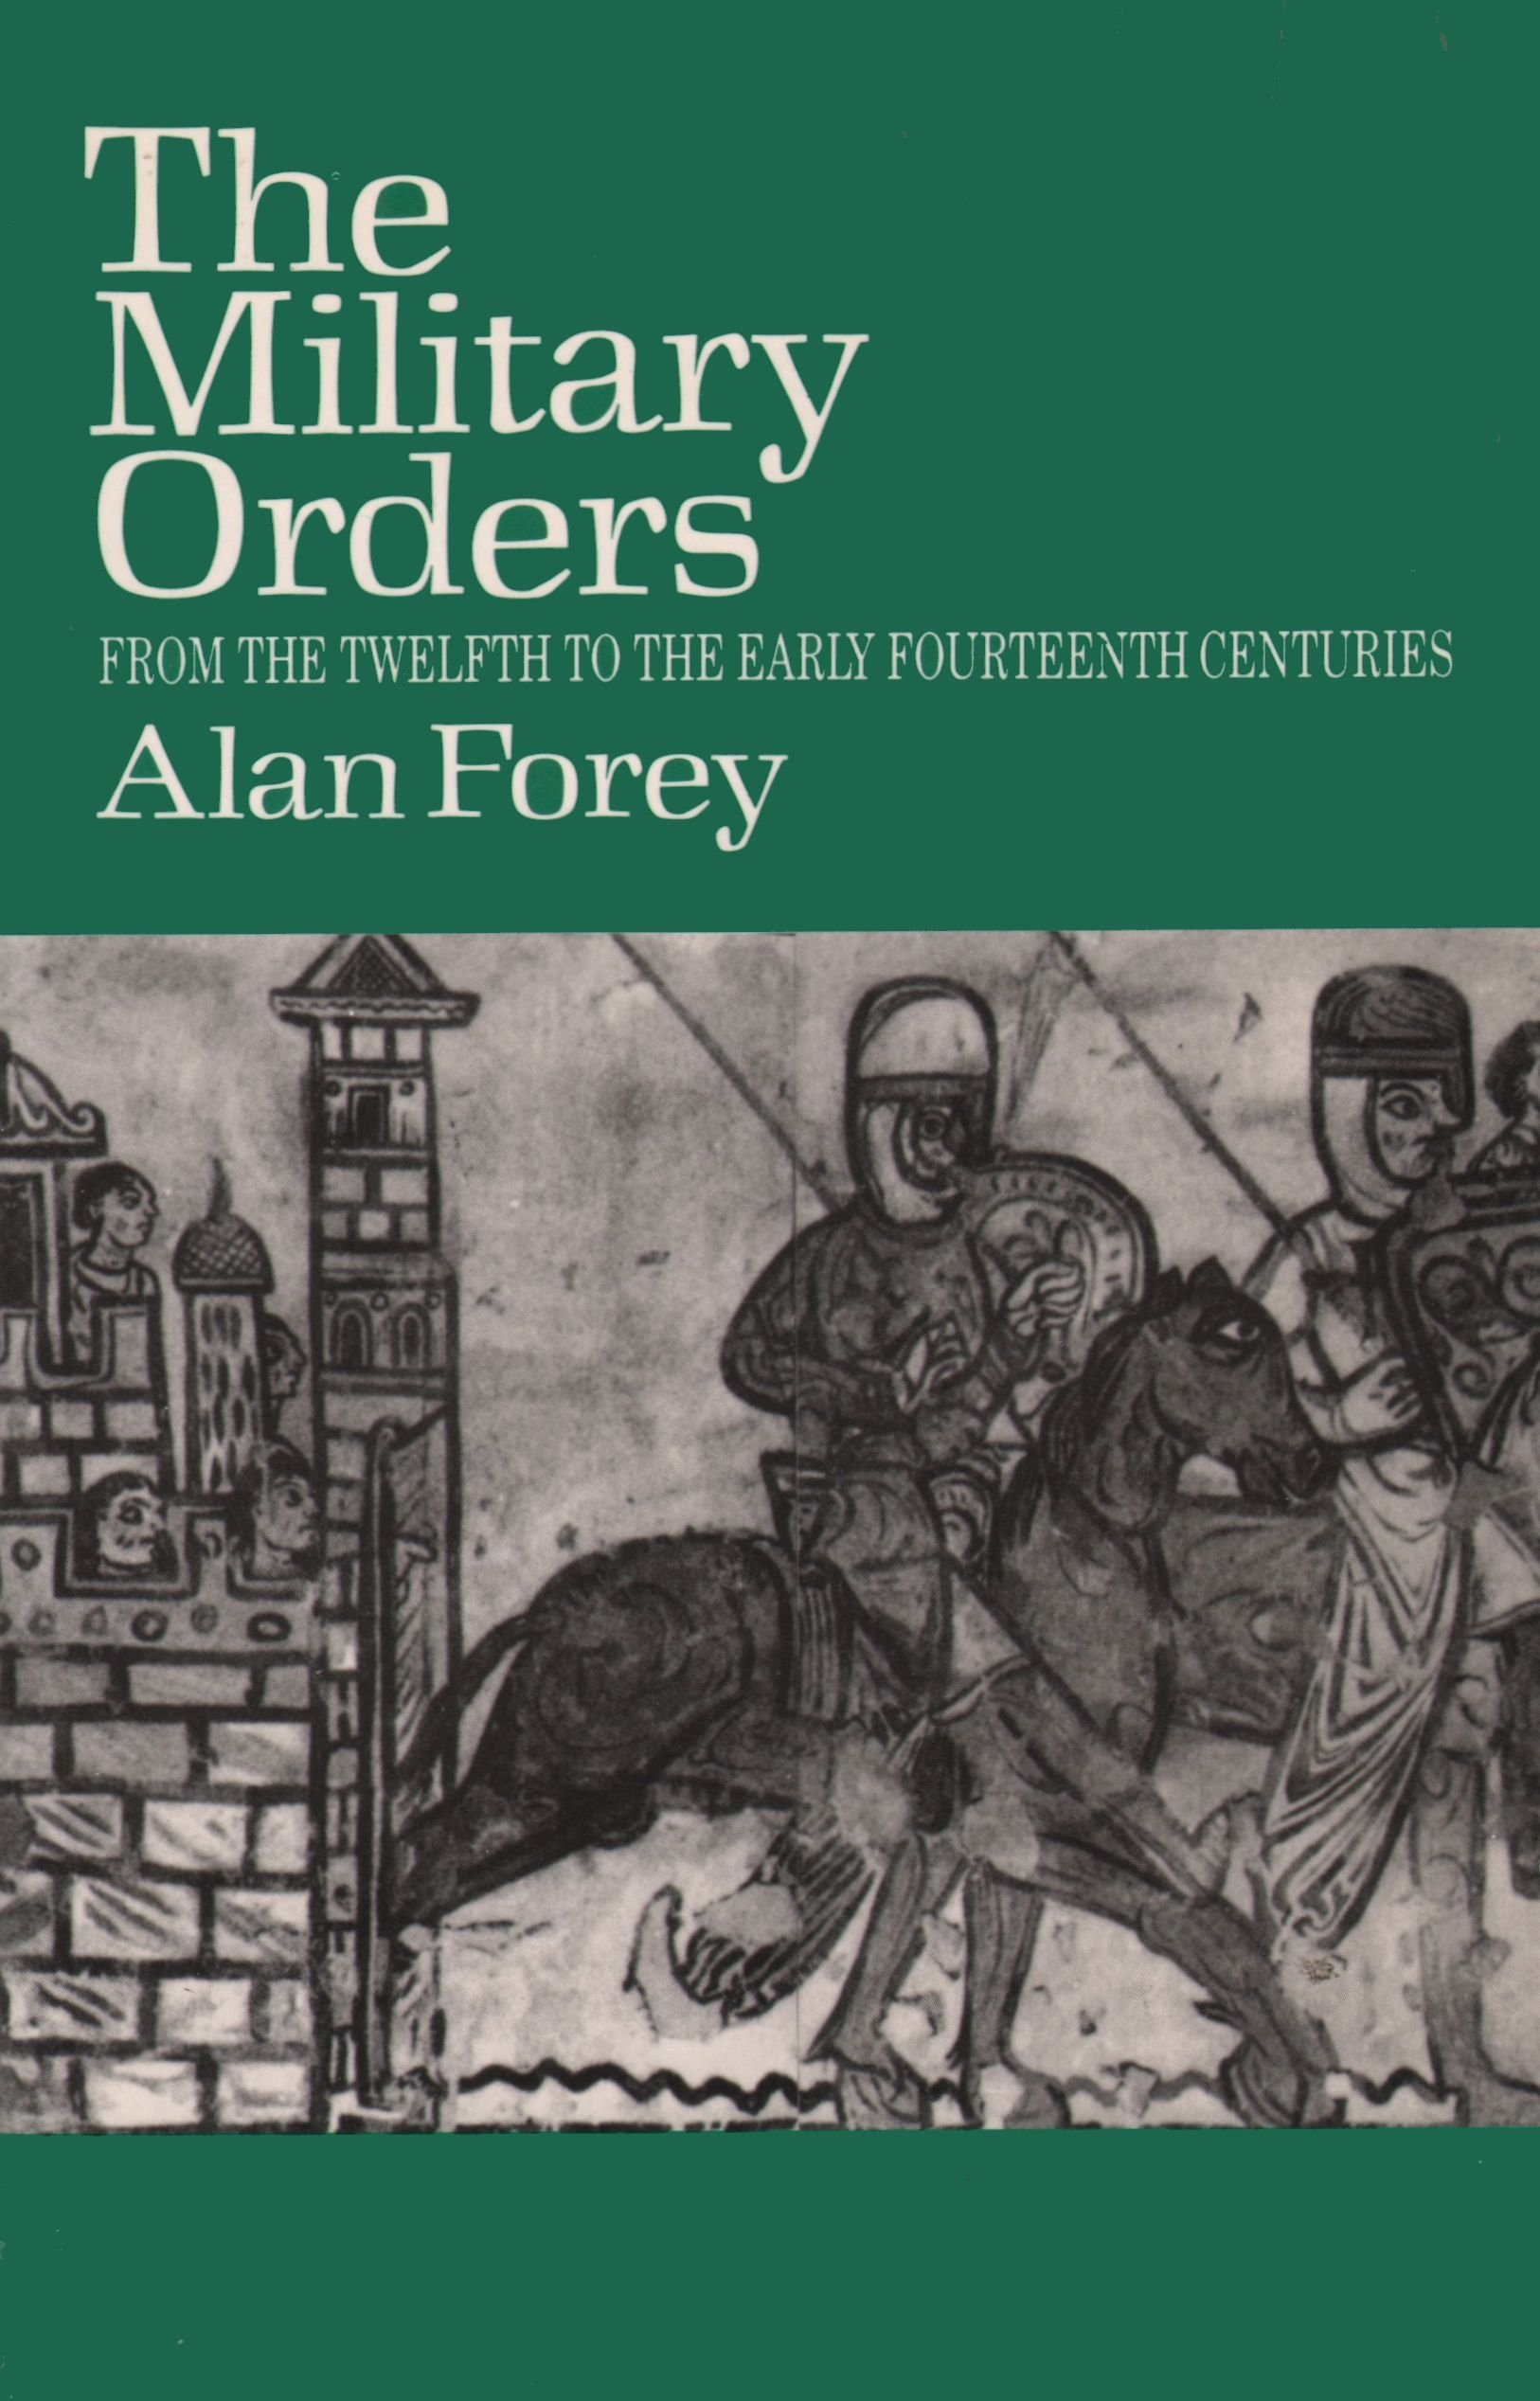 The Military Orders: From the Twelfth to the Early Fourteenth Centuries